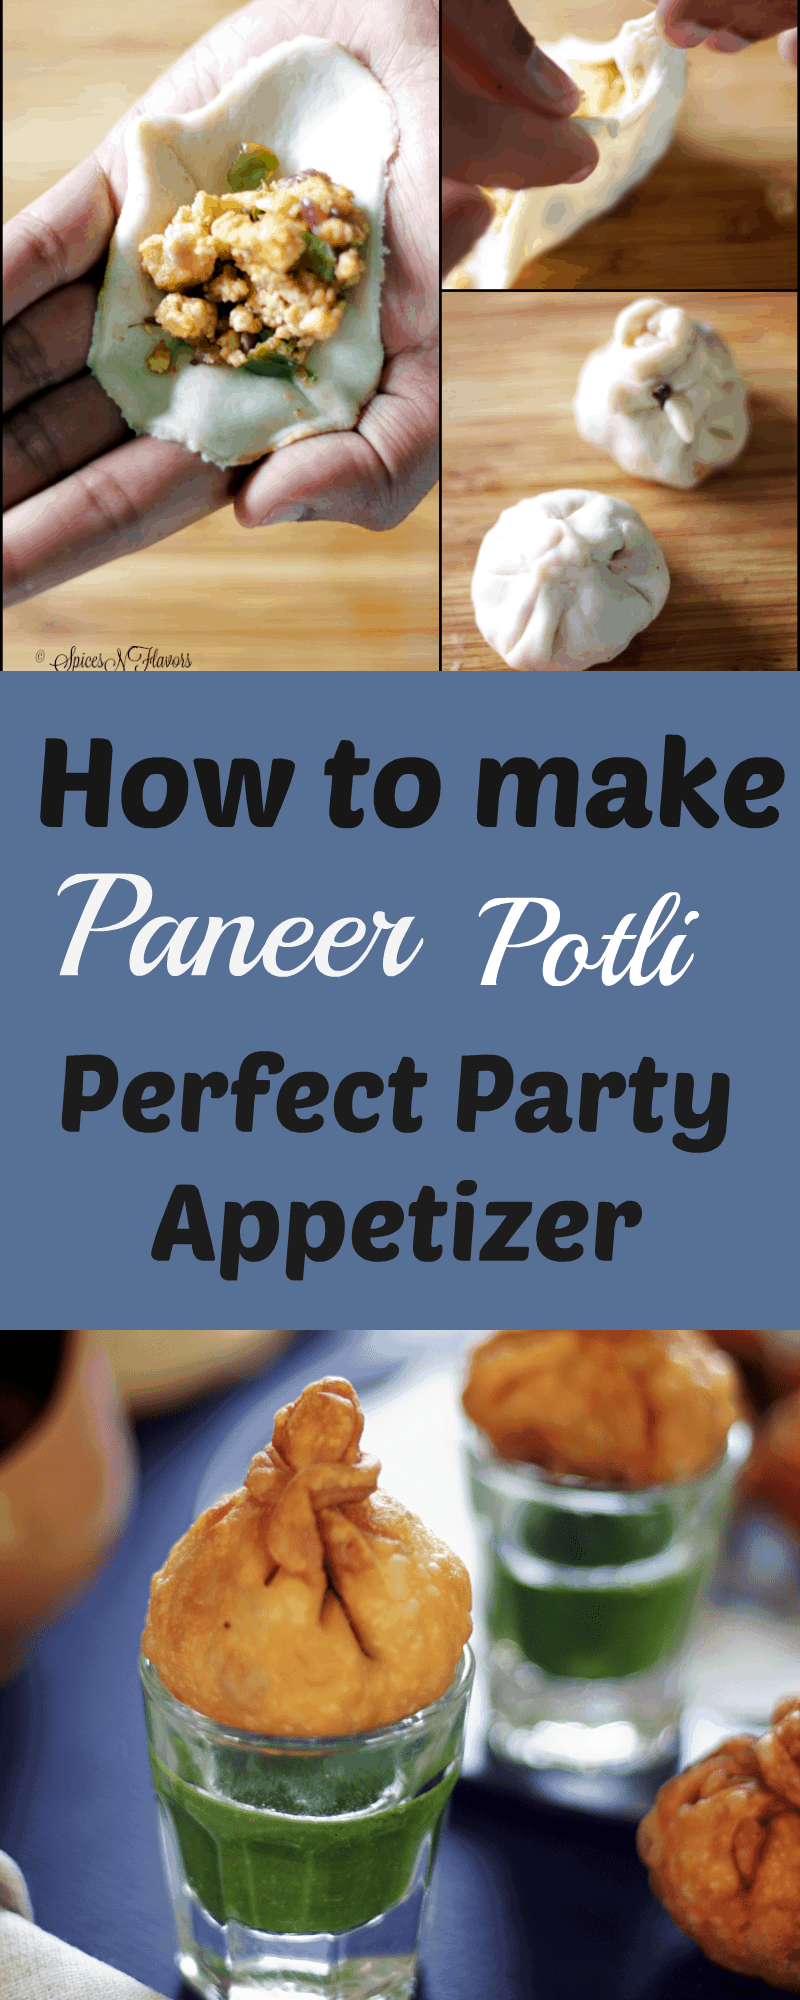 paneer-potlis-party-appetizer-starter